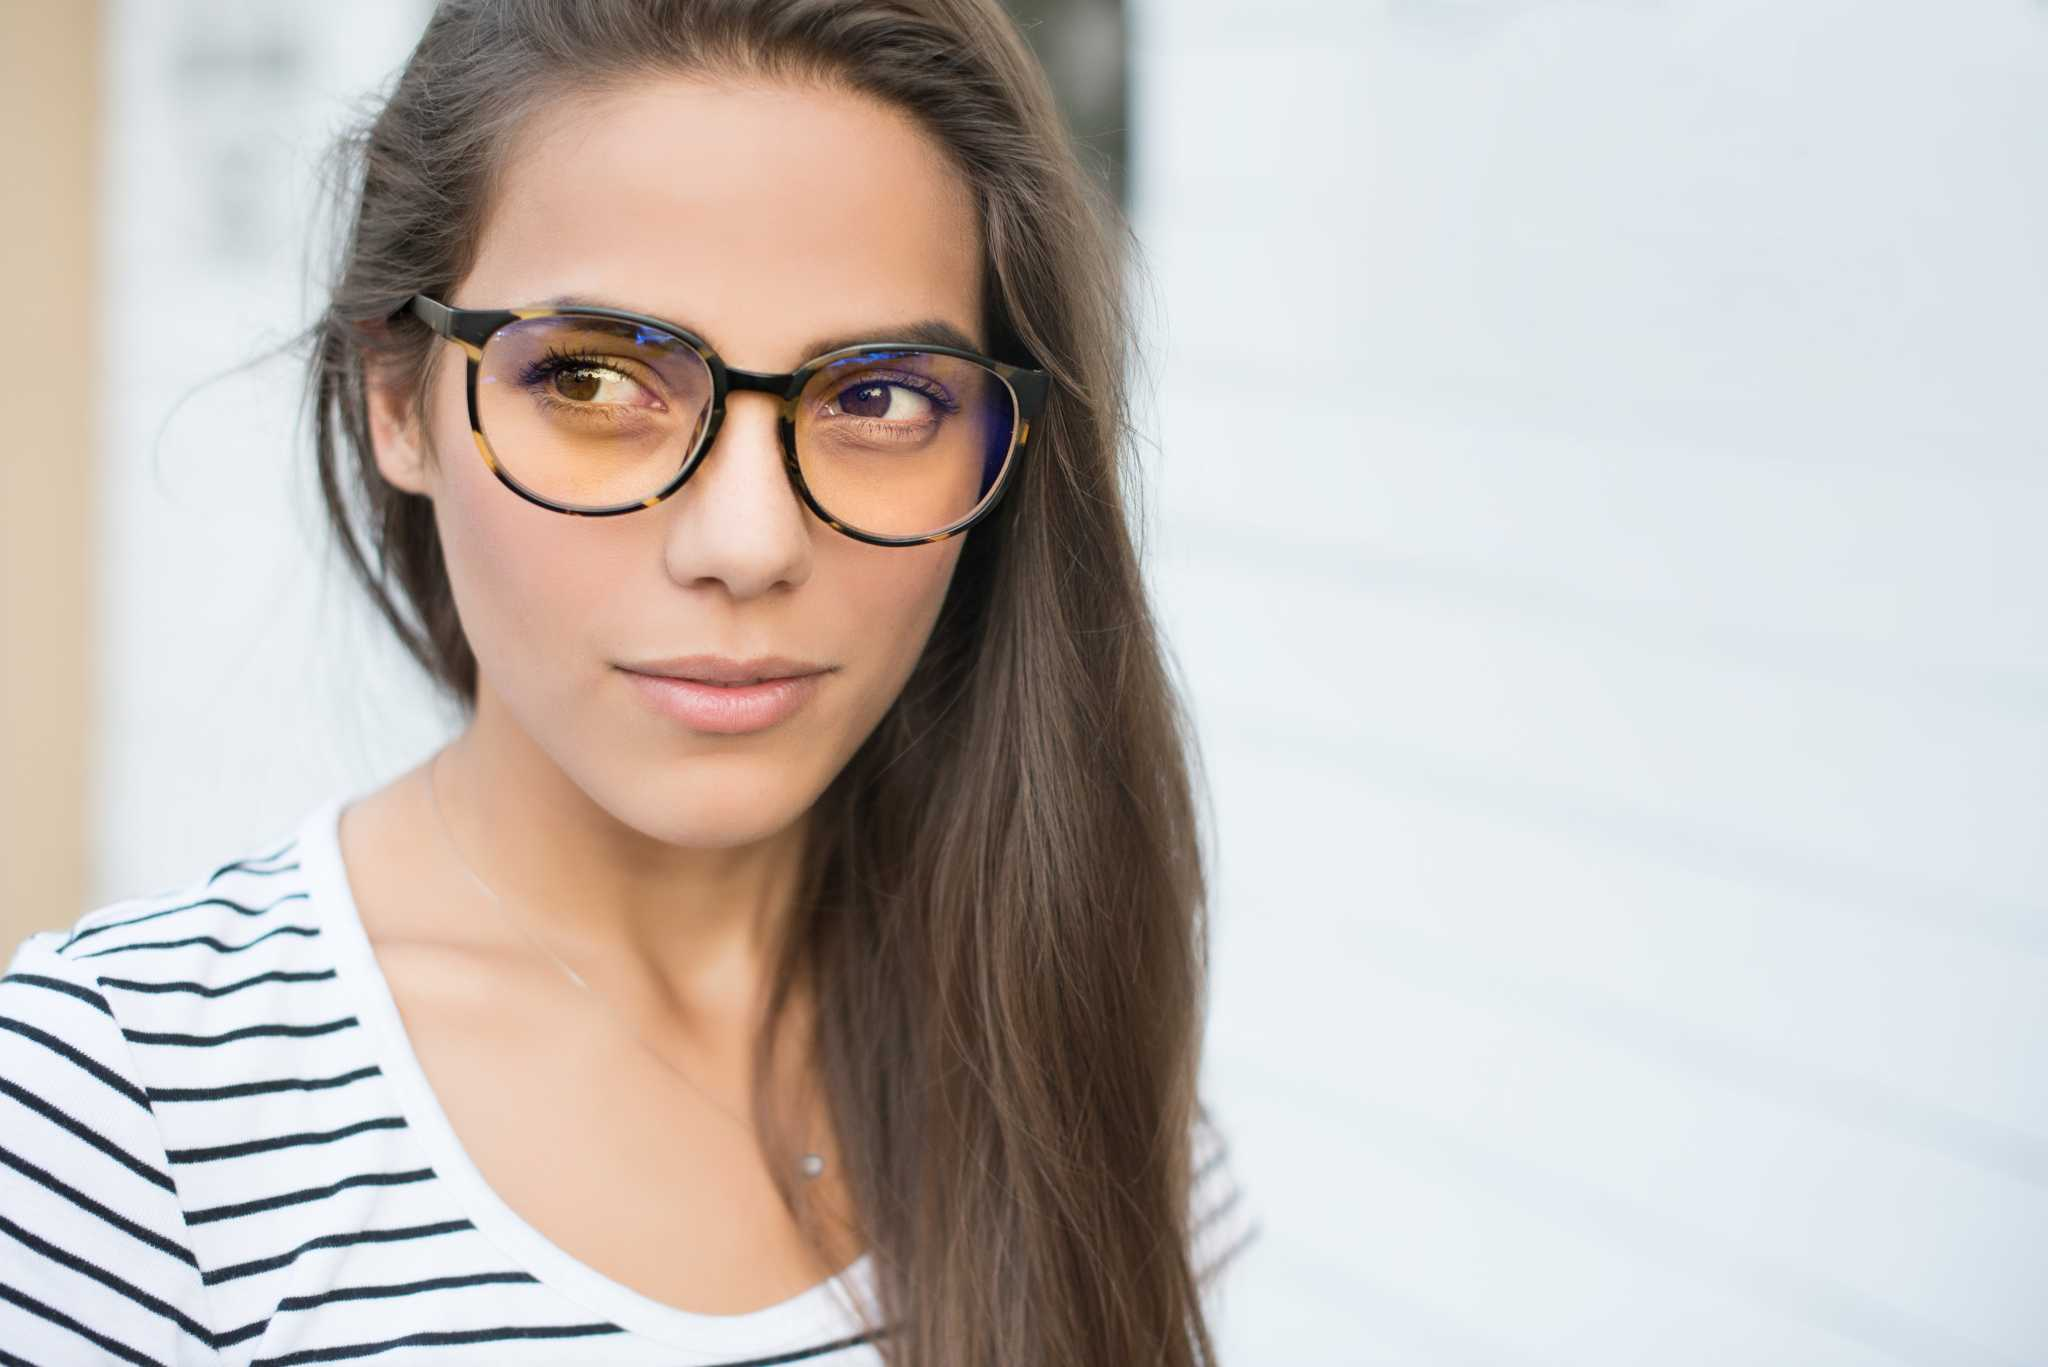 Protect your Eyes from the Harmful Blue Light & Look Sexy with Prospek Glasses from the Spektrum Collection